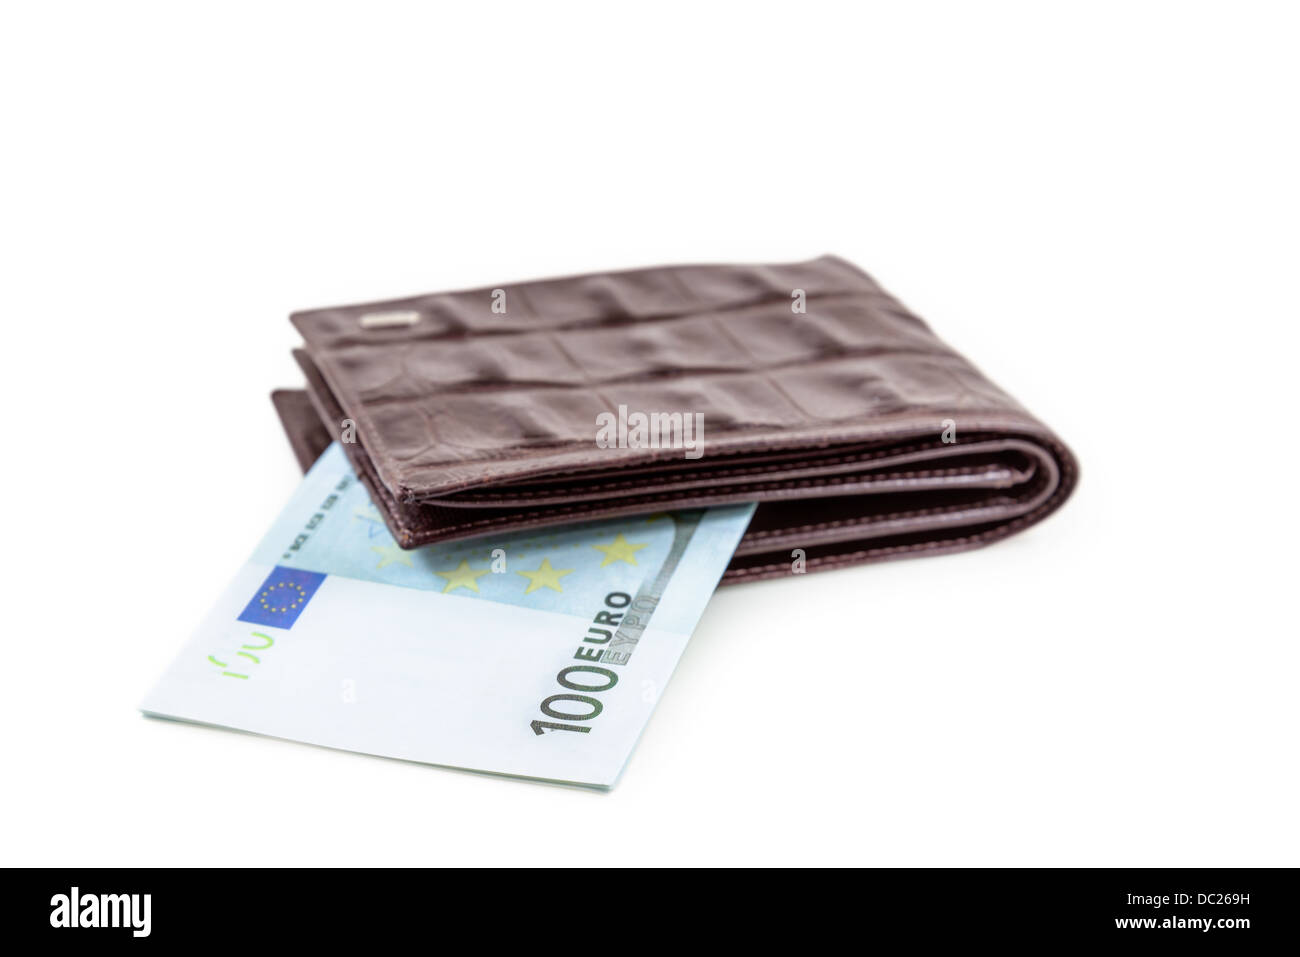 The brown leather wallet with euro is photographed on the close-up - Stock Image